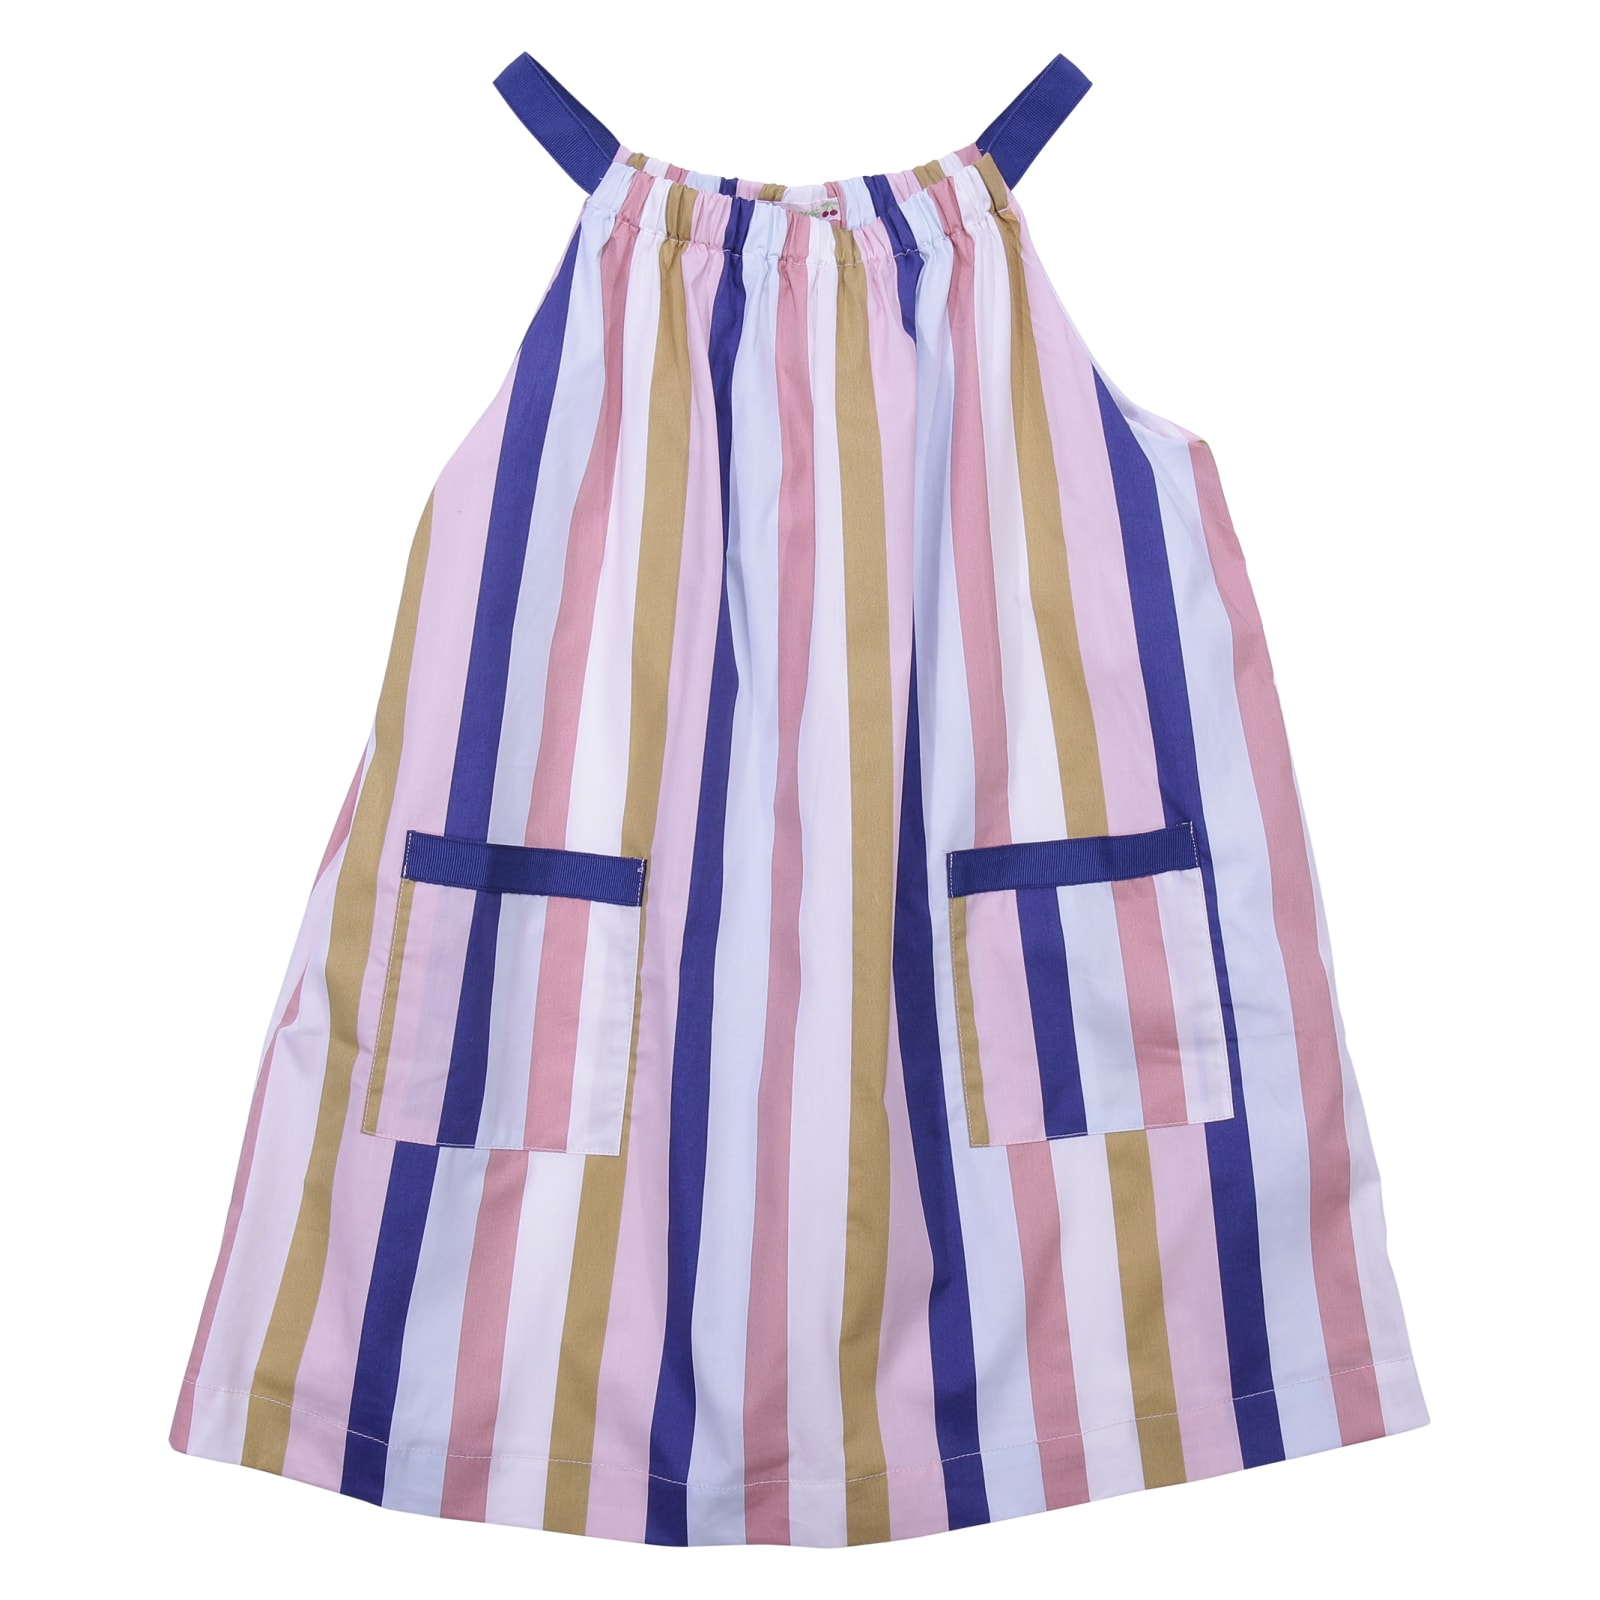 Bonpoint Striped Multicolor Print Cotton Poplin Dress